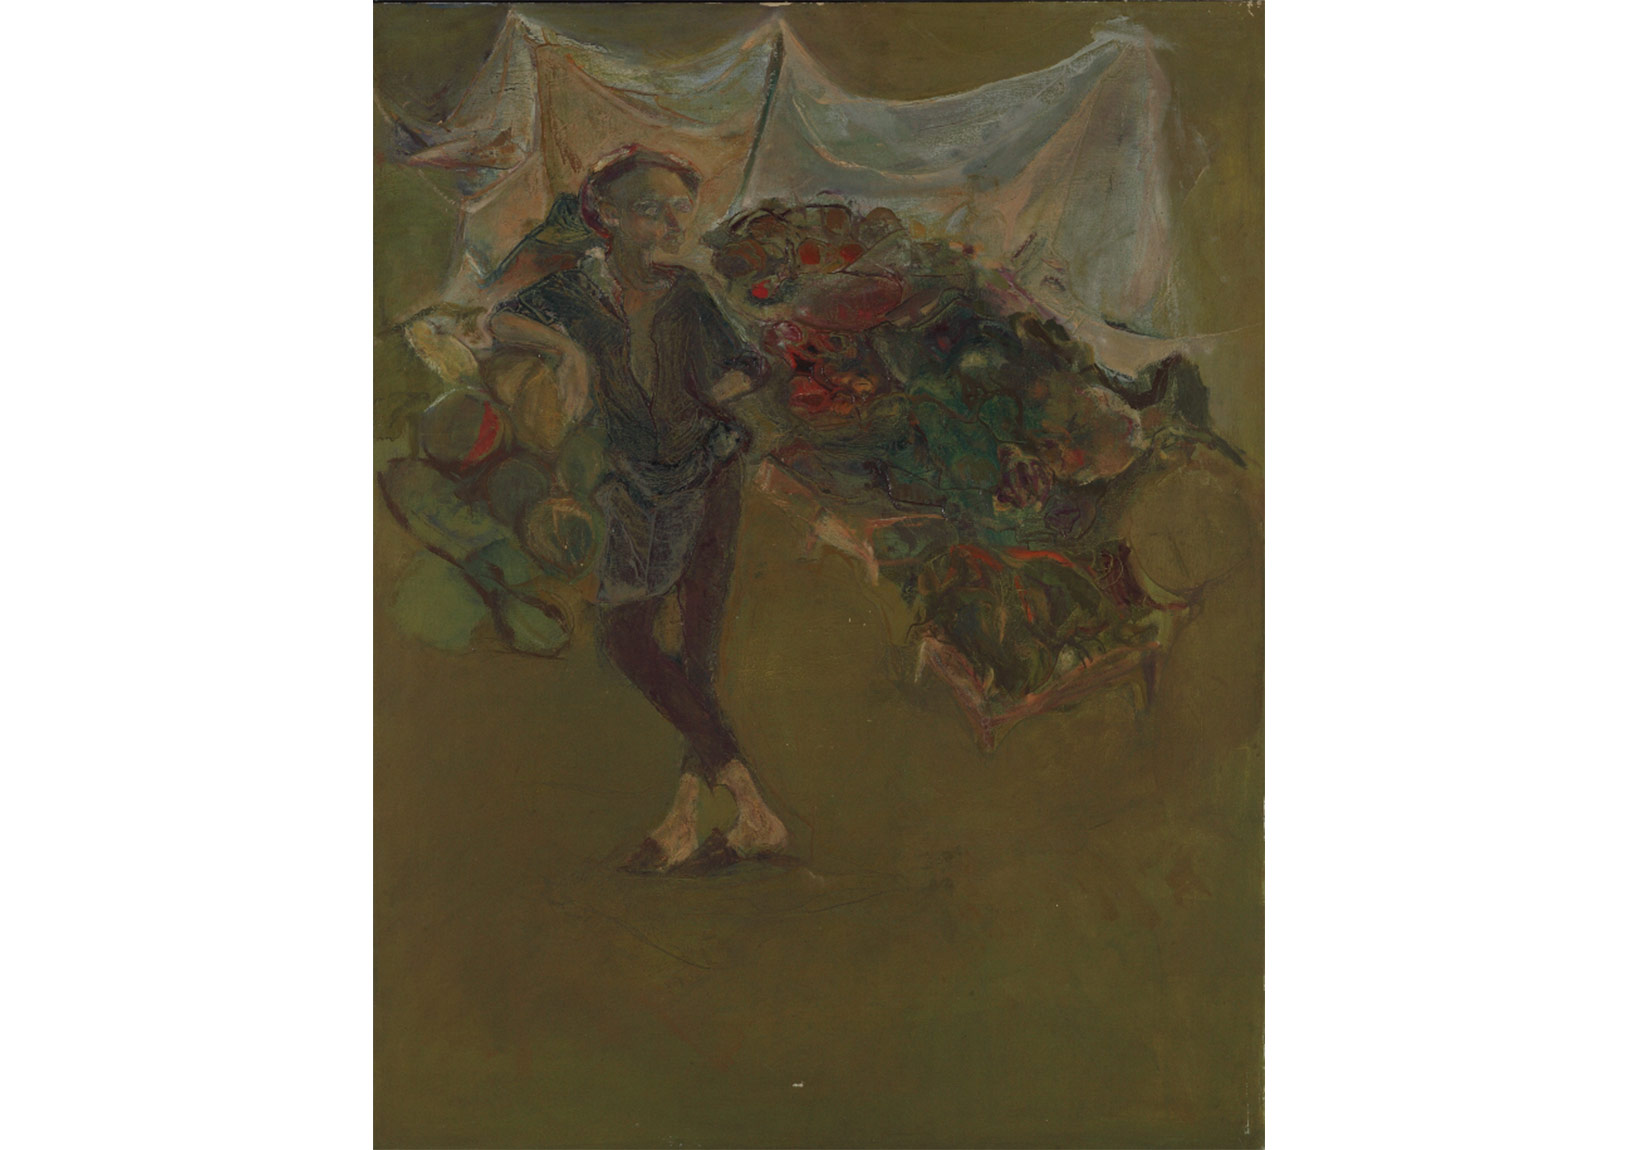 """Manav"", 1966, 118 x 93 cm, Tuval üzerine yağlıboya, Oil on canvas, Sanatçı koleksiyonu, Collection of the Artist"